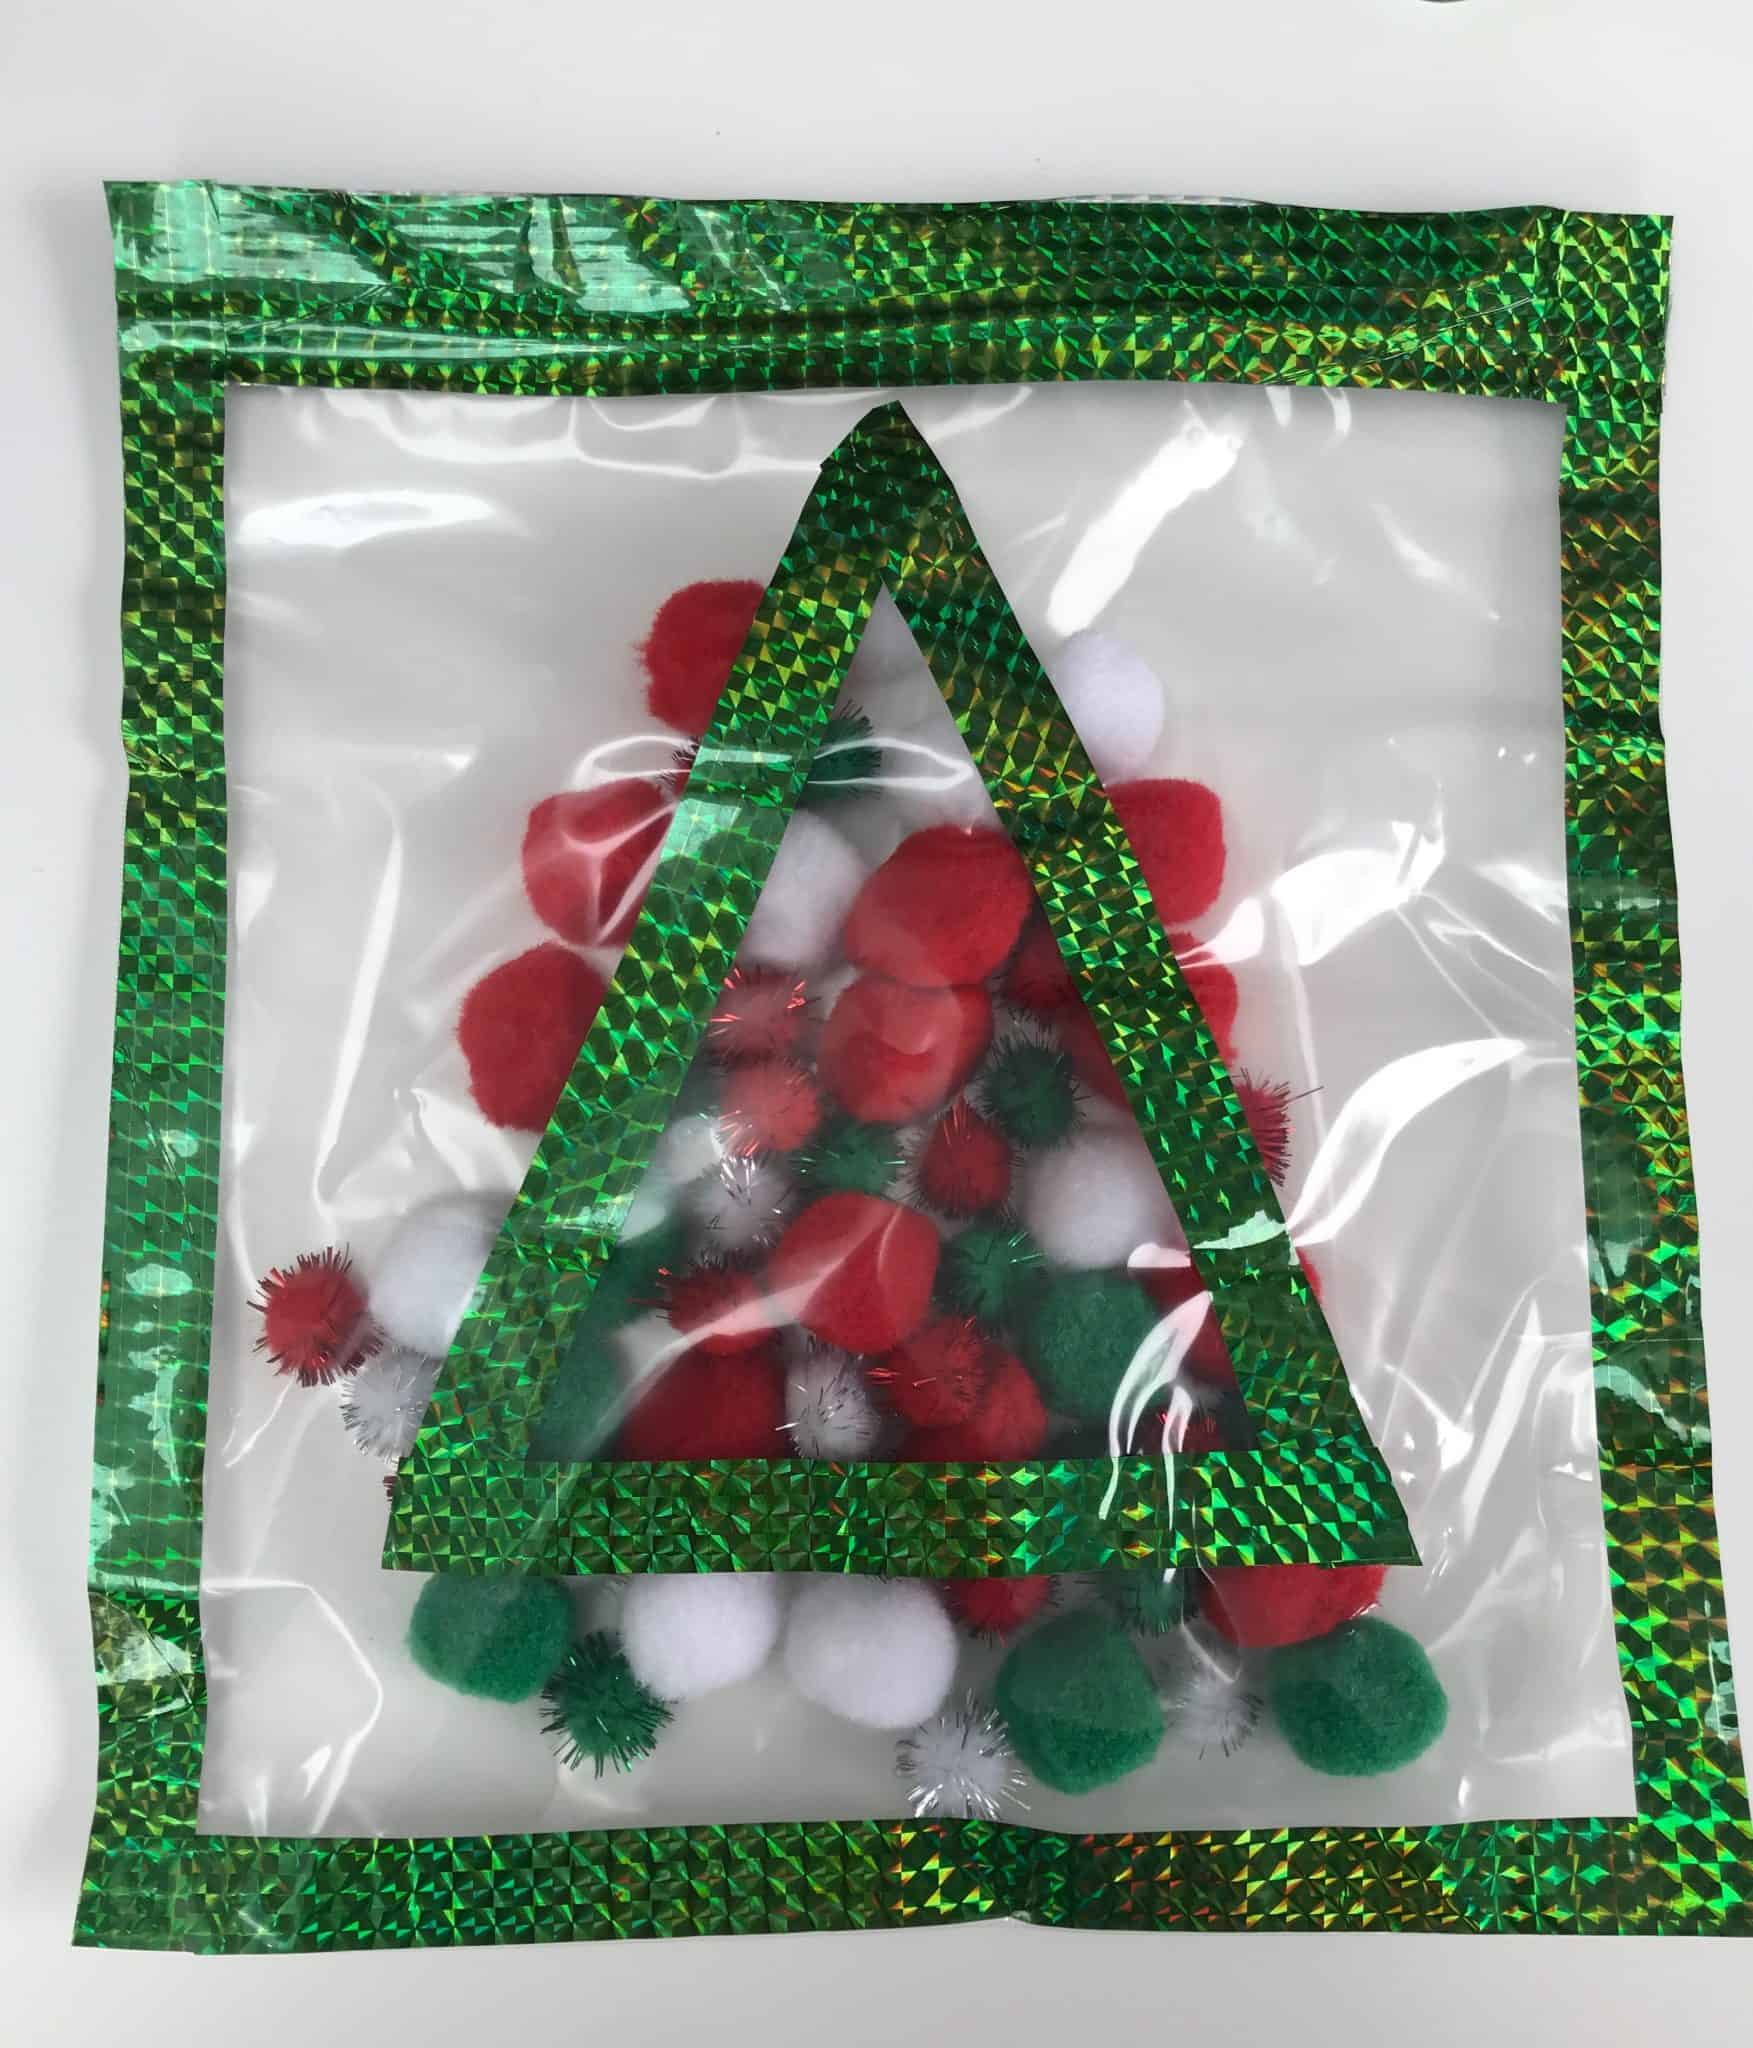 Sensory Bag with Christmas Tree and Decorations